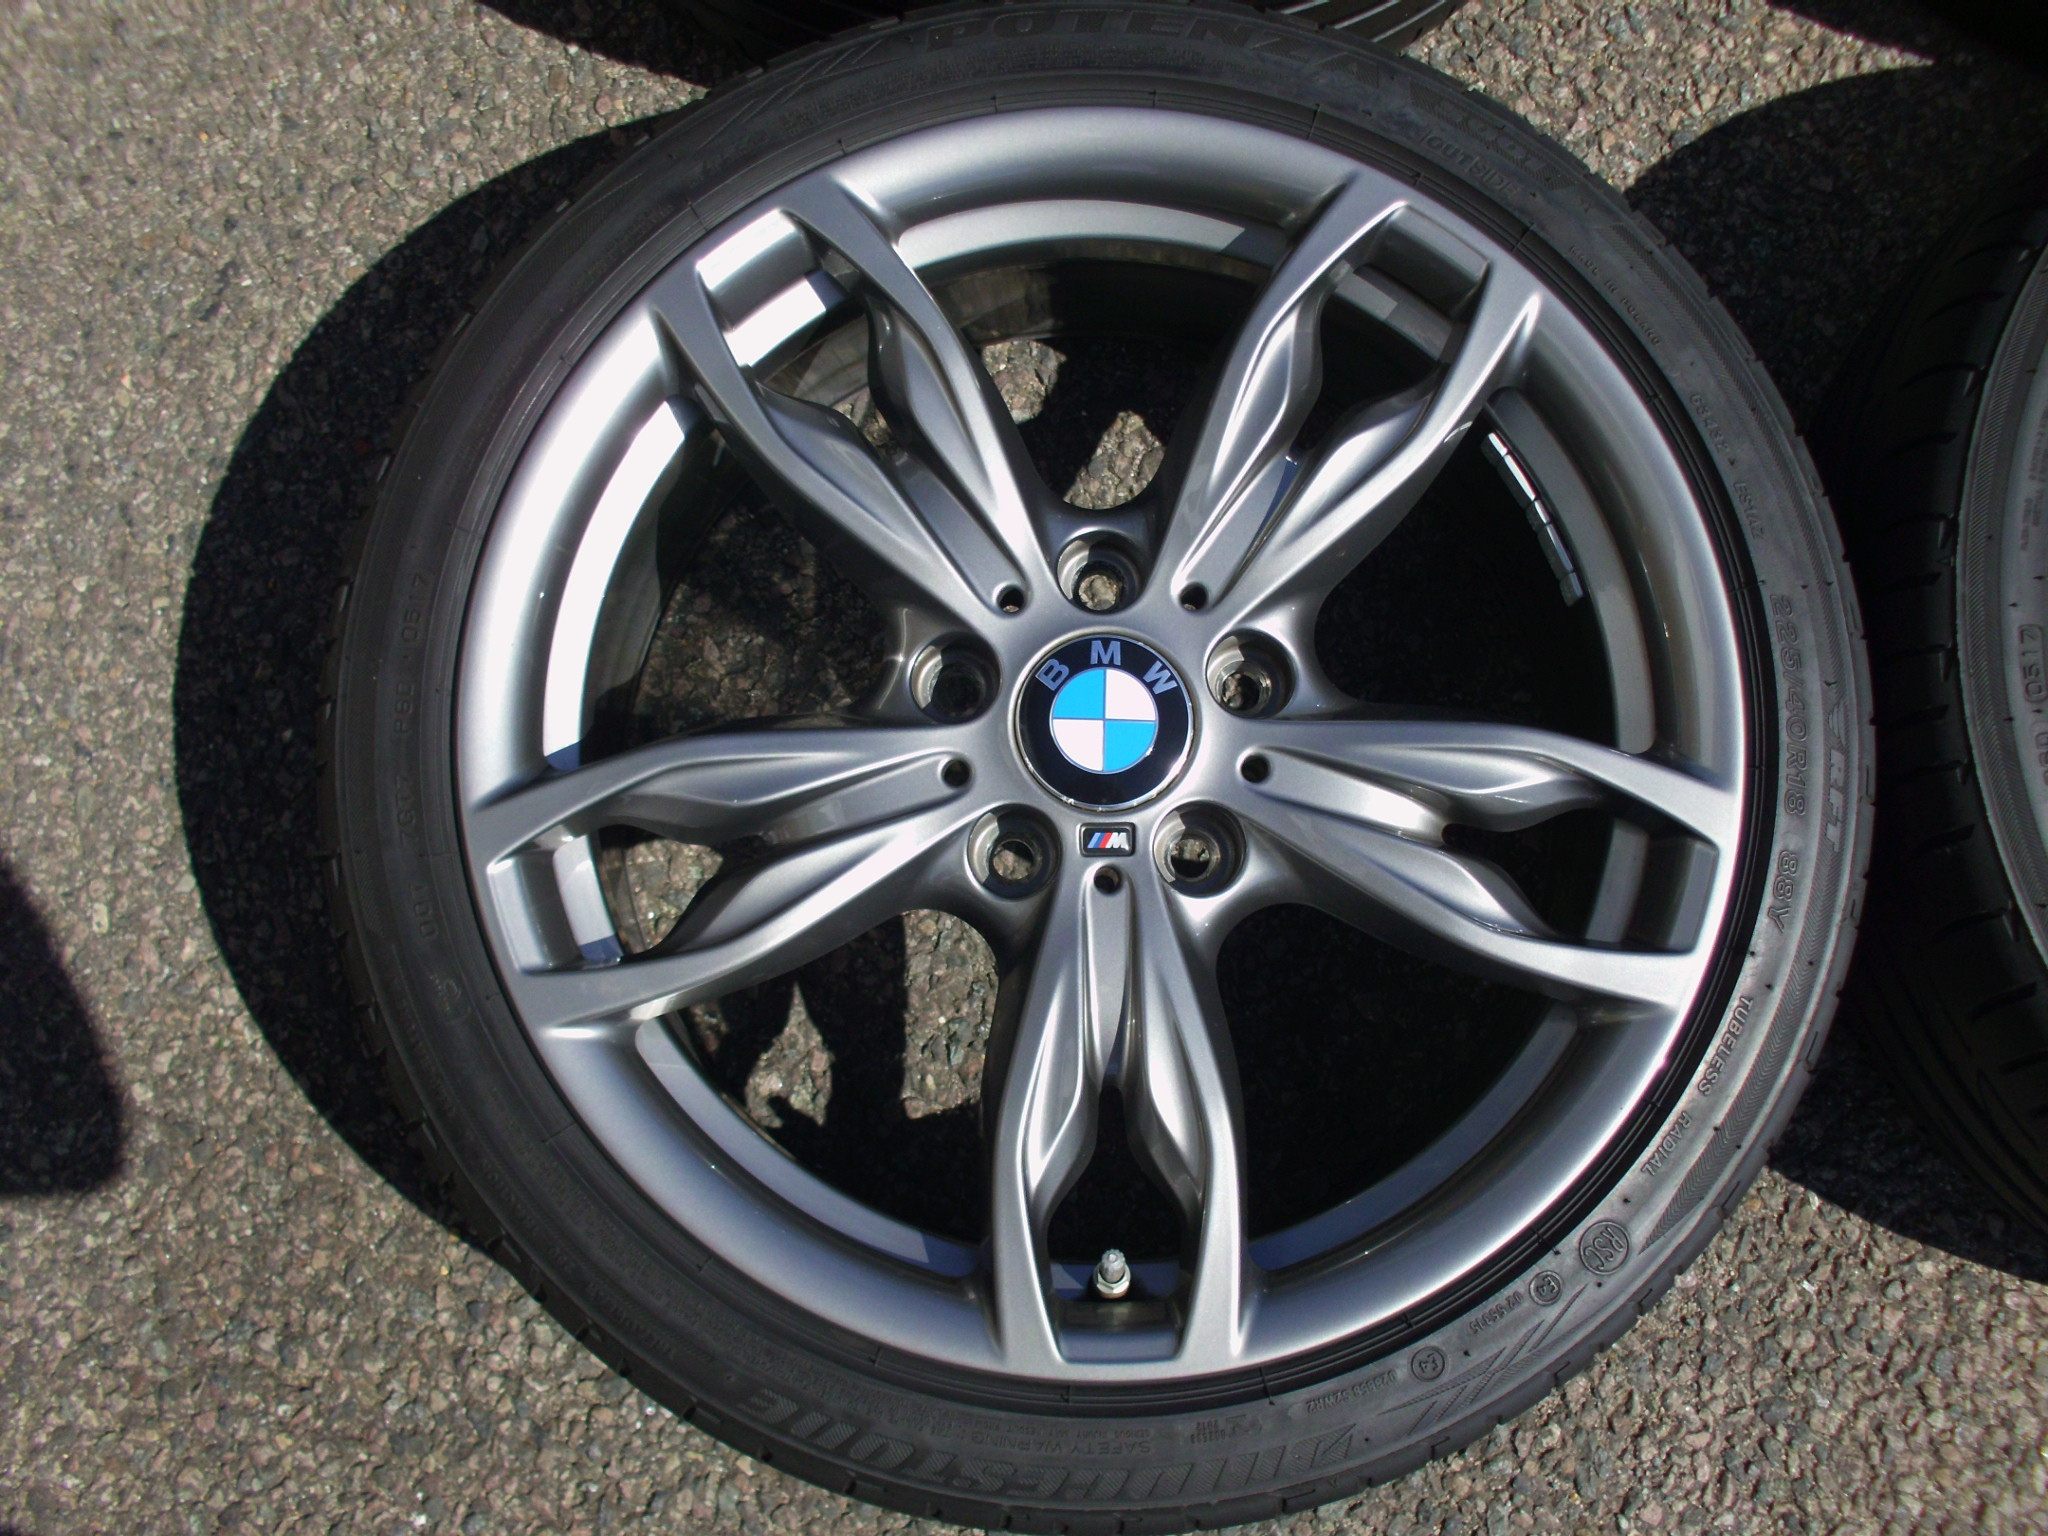 "USED 18"" GENUINE STYLE 436M DOUBLE SPOKE ALLOYS,NEAR UNMARKED,WIDE REAR INC MICHELIN PILOT SUPER SPORT TYRES AND TPMS"